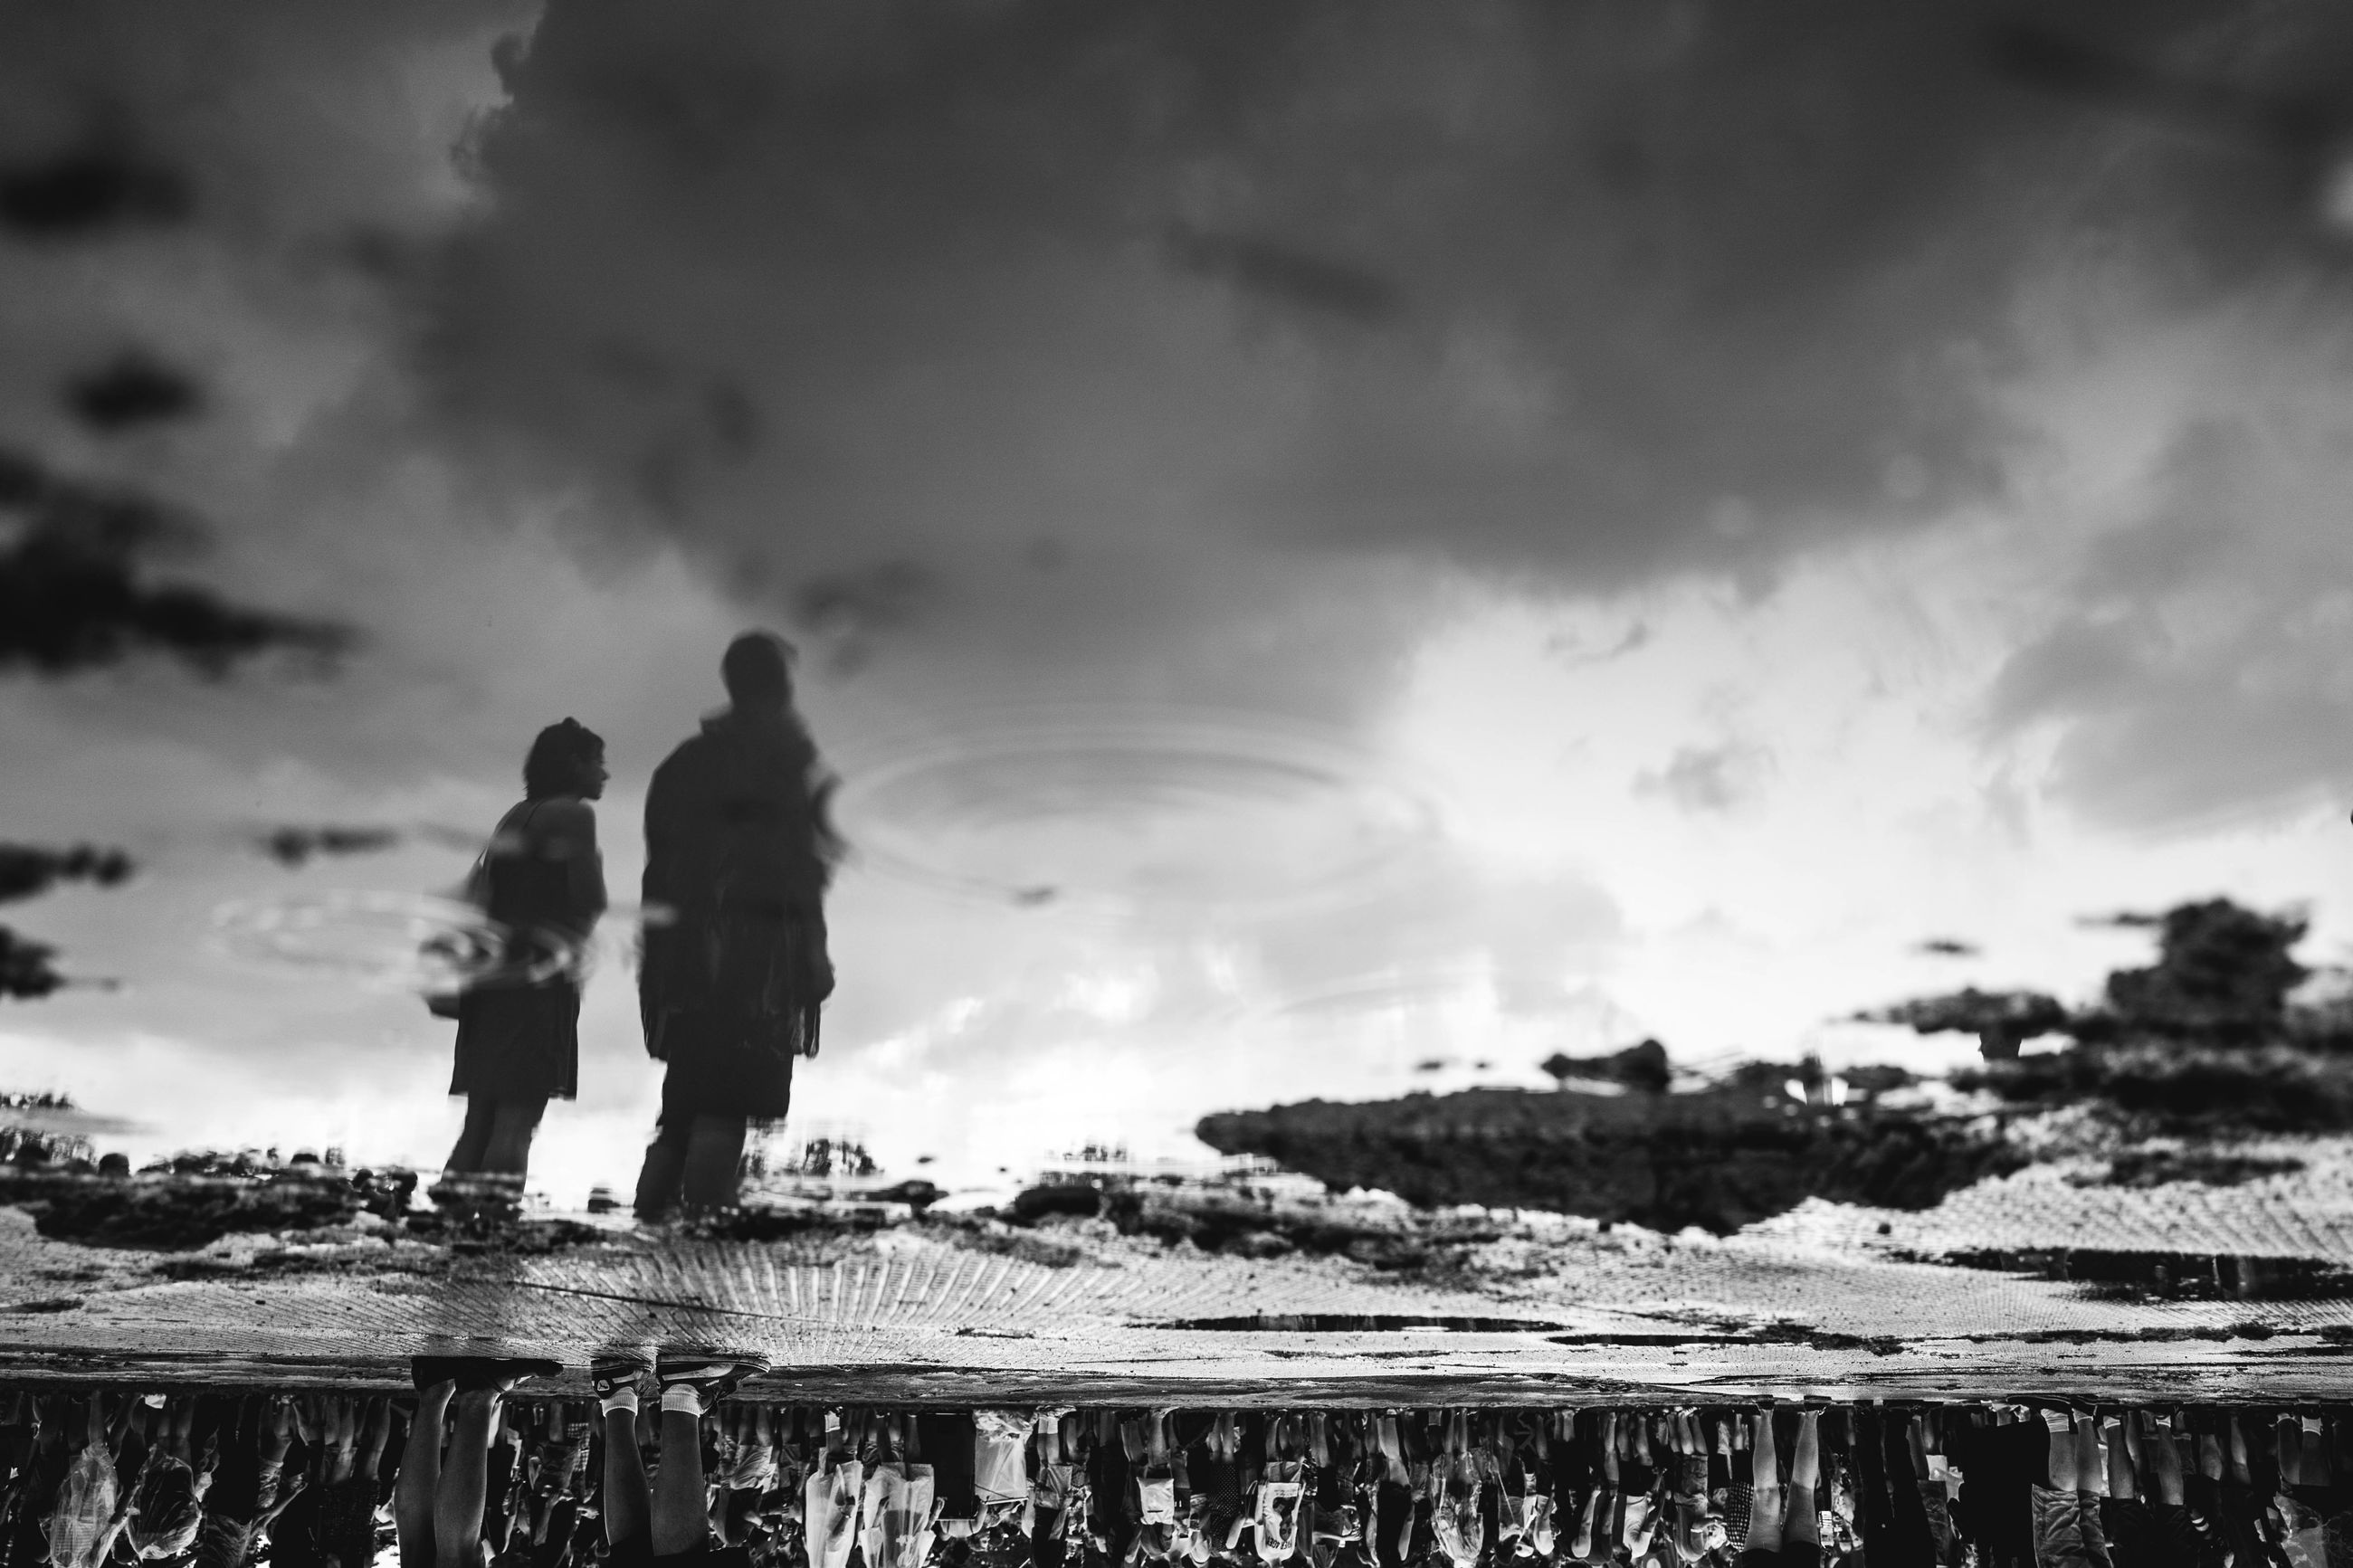 two people, sky, water, outdoors, togetherness, sea, cloud - sky, nature, bonding, city, beauty in nature, beach, people, day, adult